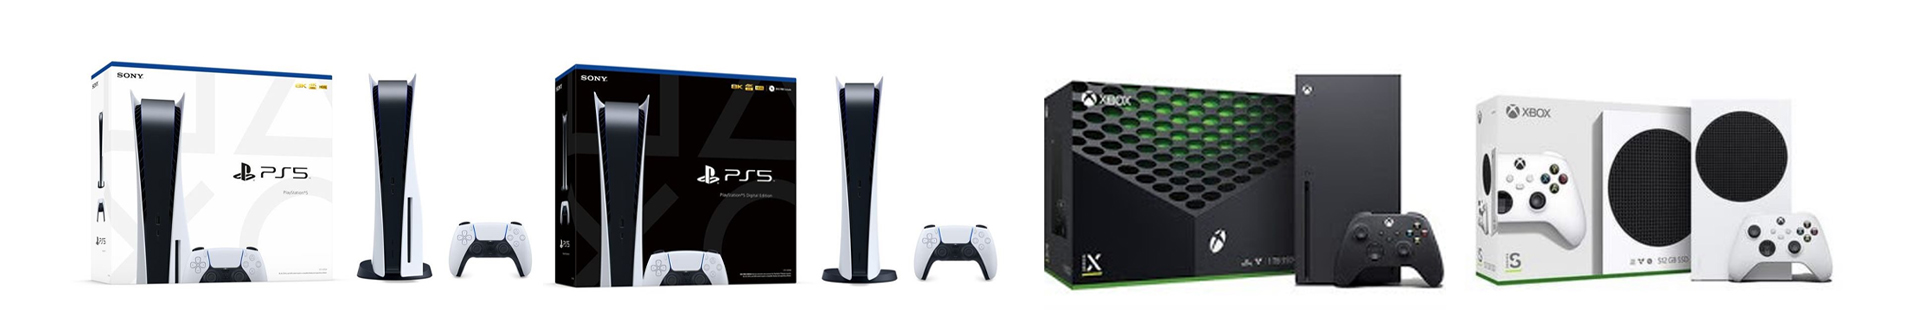 Consoles Next-Gen Rétrocompatibles